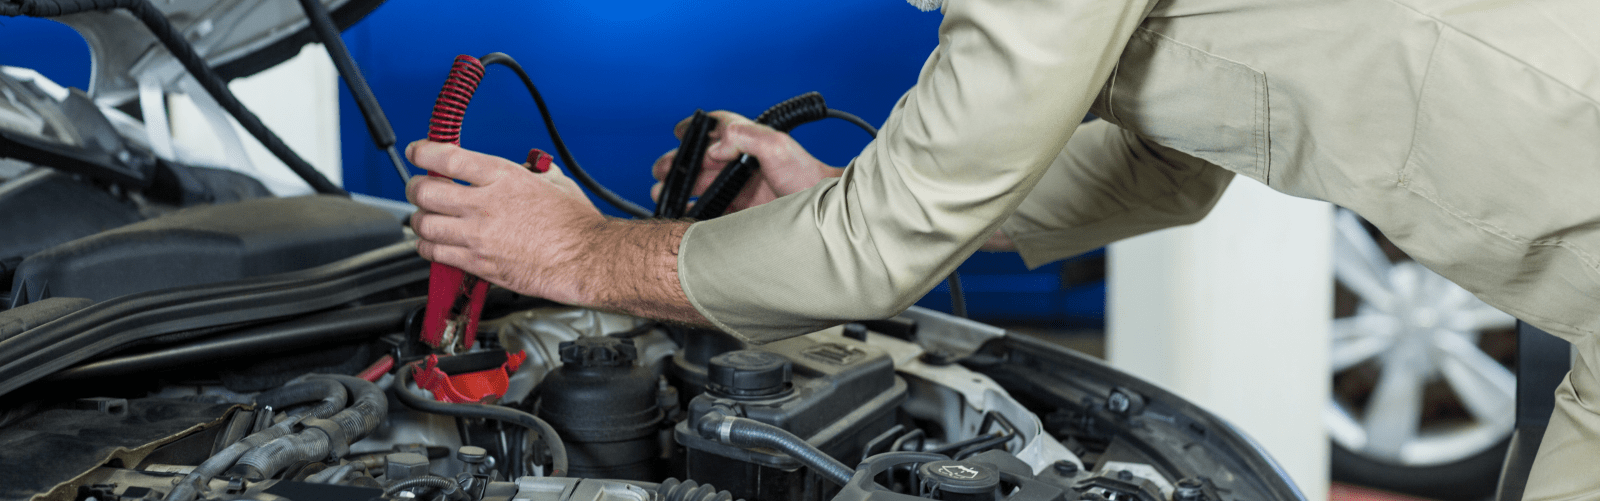 Get car battery replacement in Muscat at ServiceMyCar